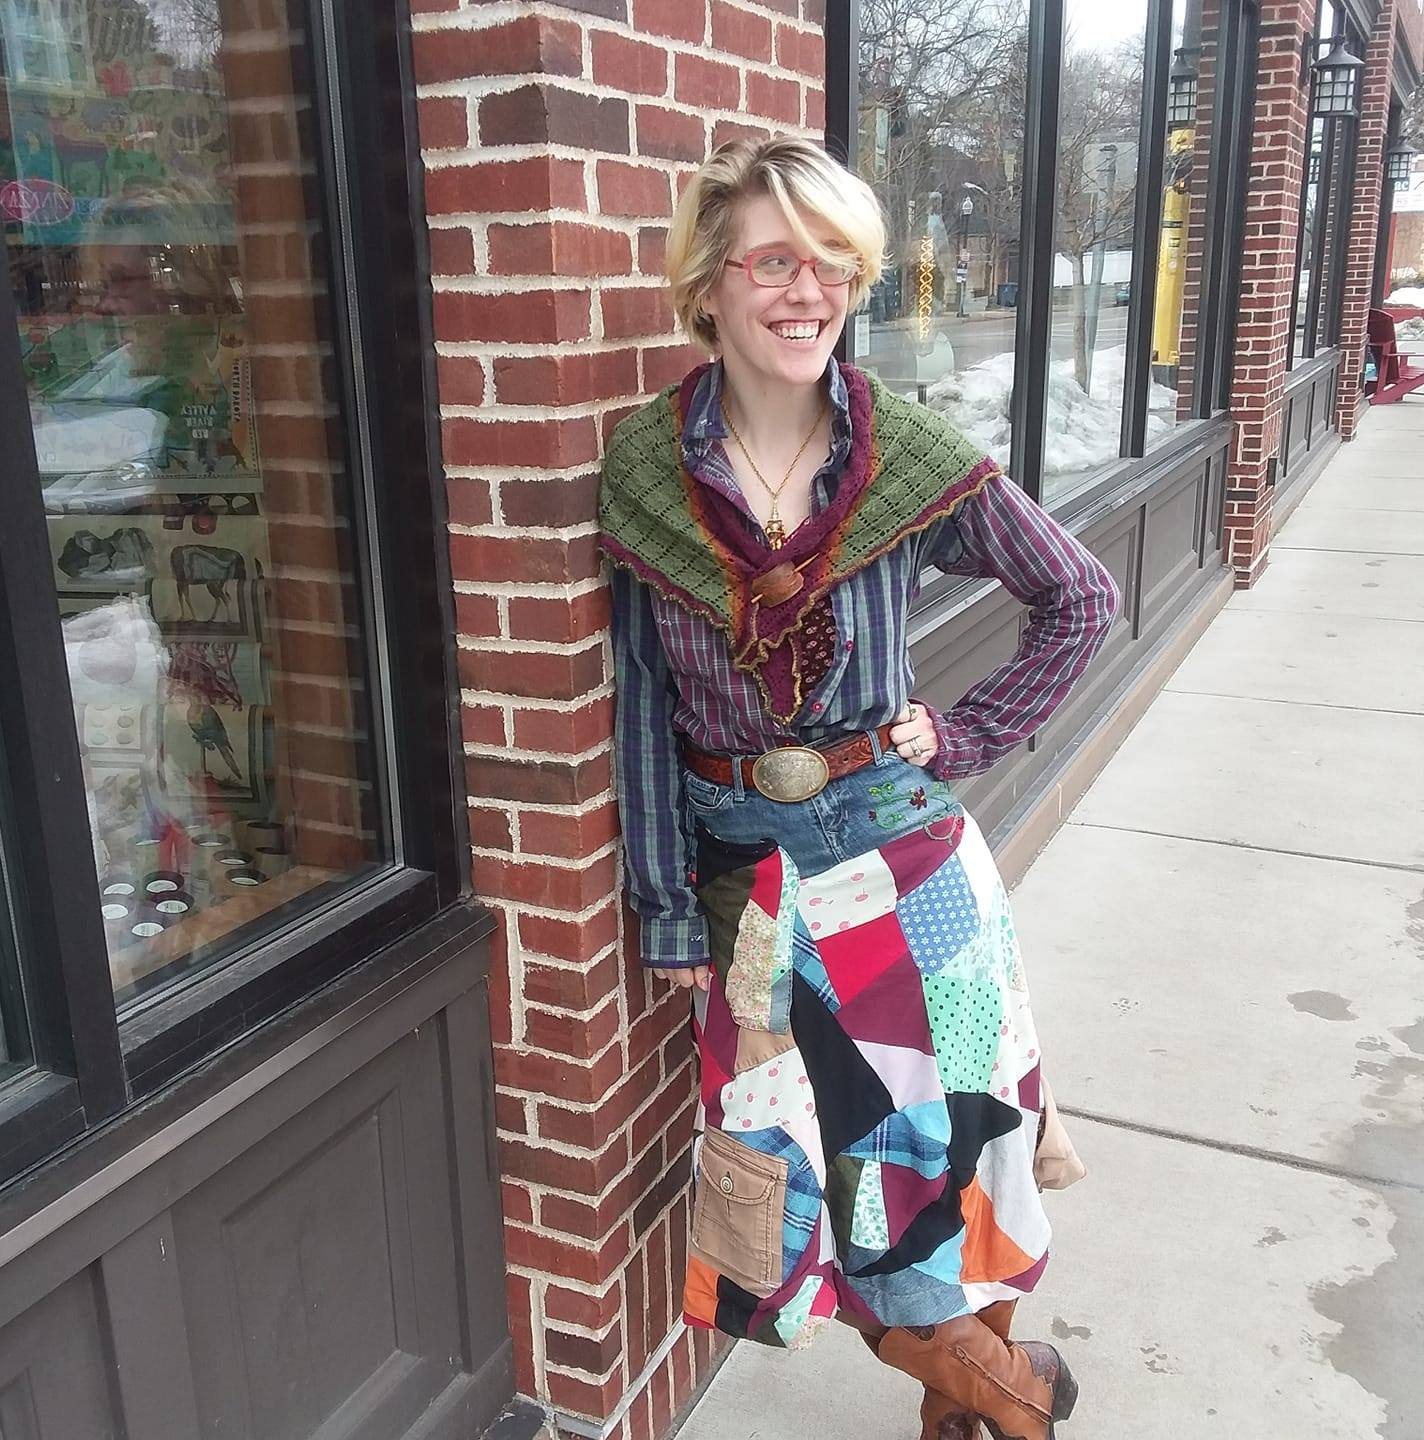 Wearing: Dad's old flannel shirt, altered down, handmade tank top ( Melly Sews free pattern ), hand knit shawl (Estonian Lace, Triangle shawl), patchwork skirt (self-drafted).